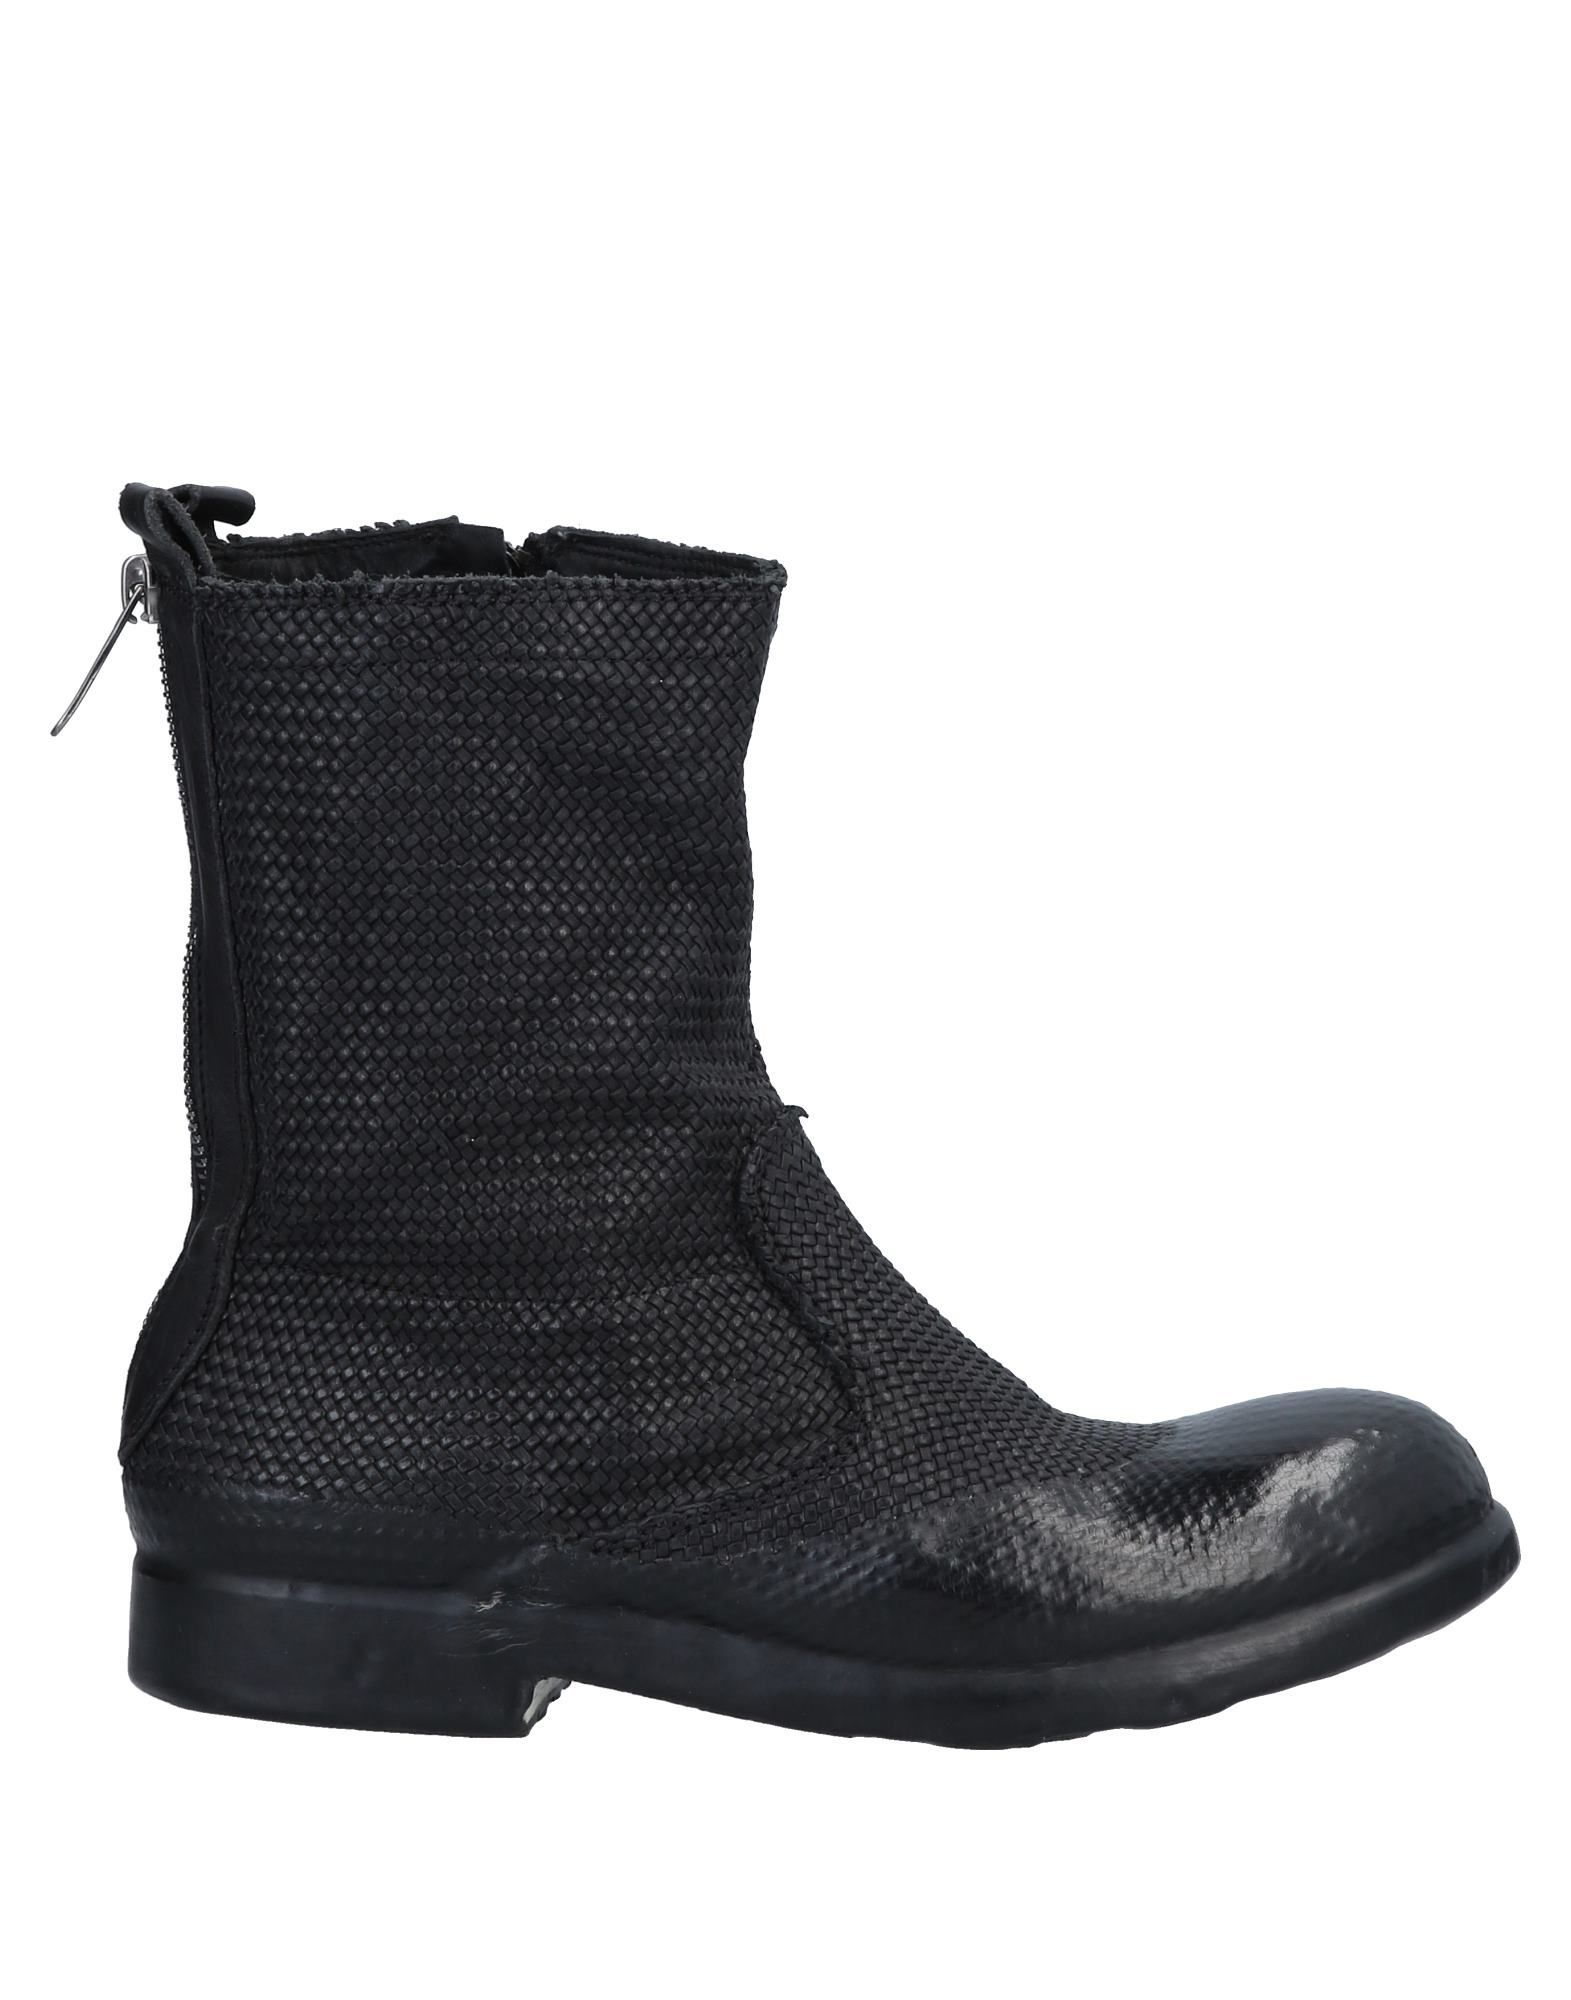 FOOTWEAR O.X.S. Black Woman Other Fibres